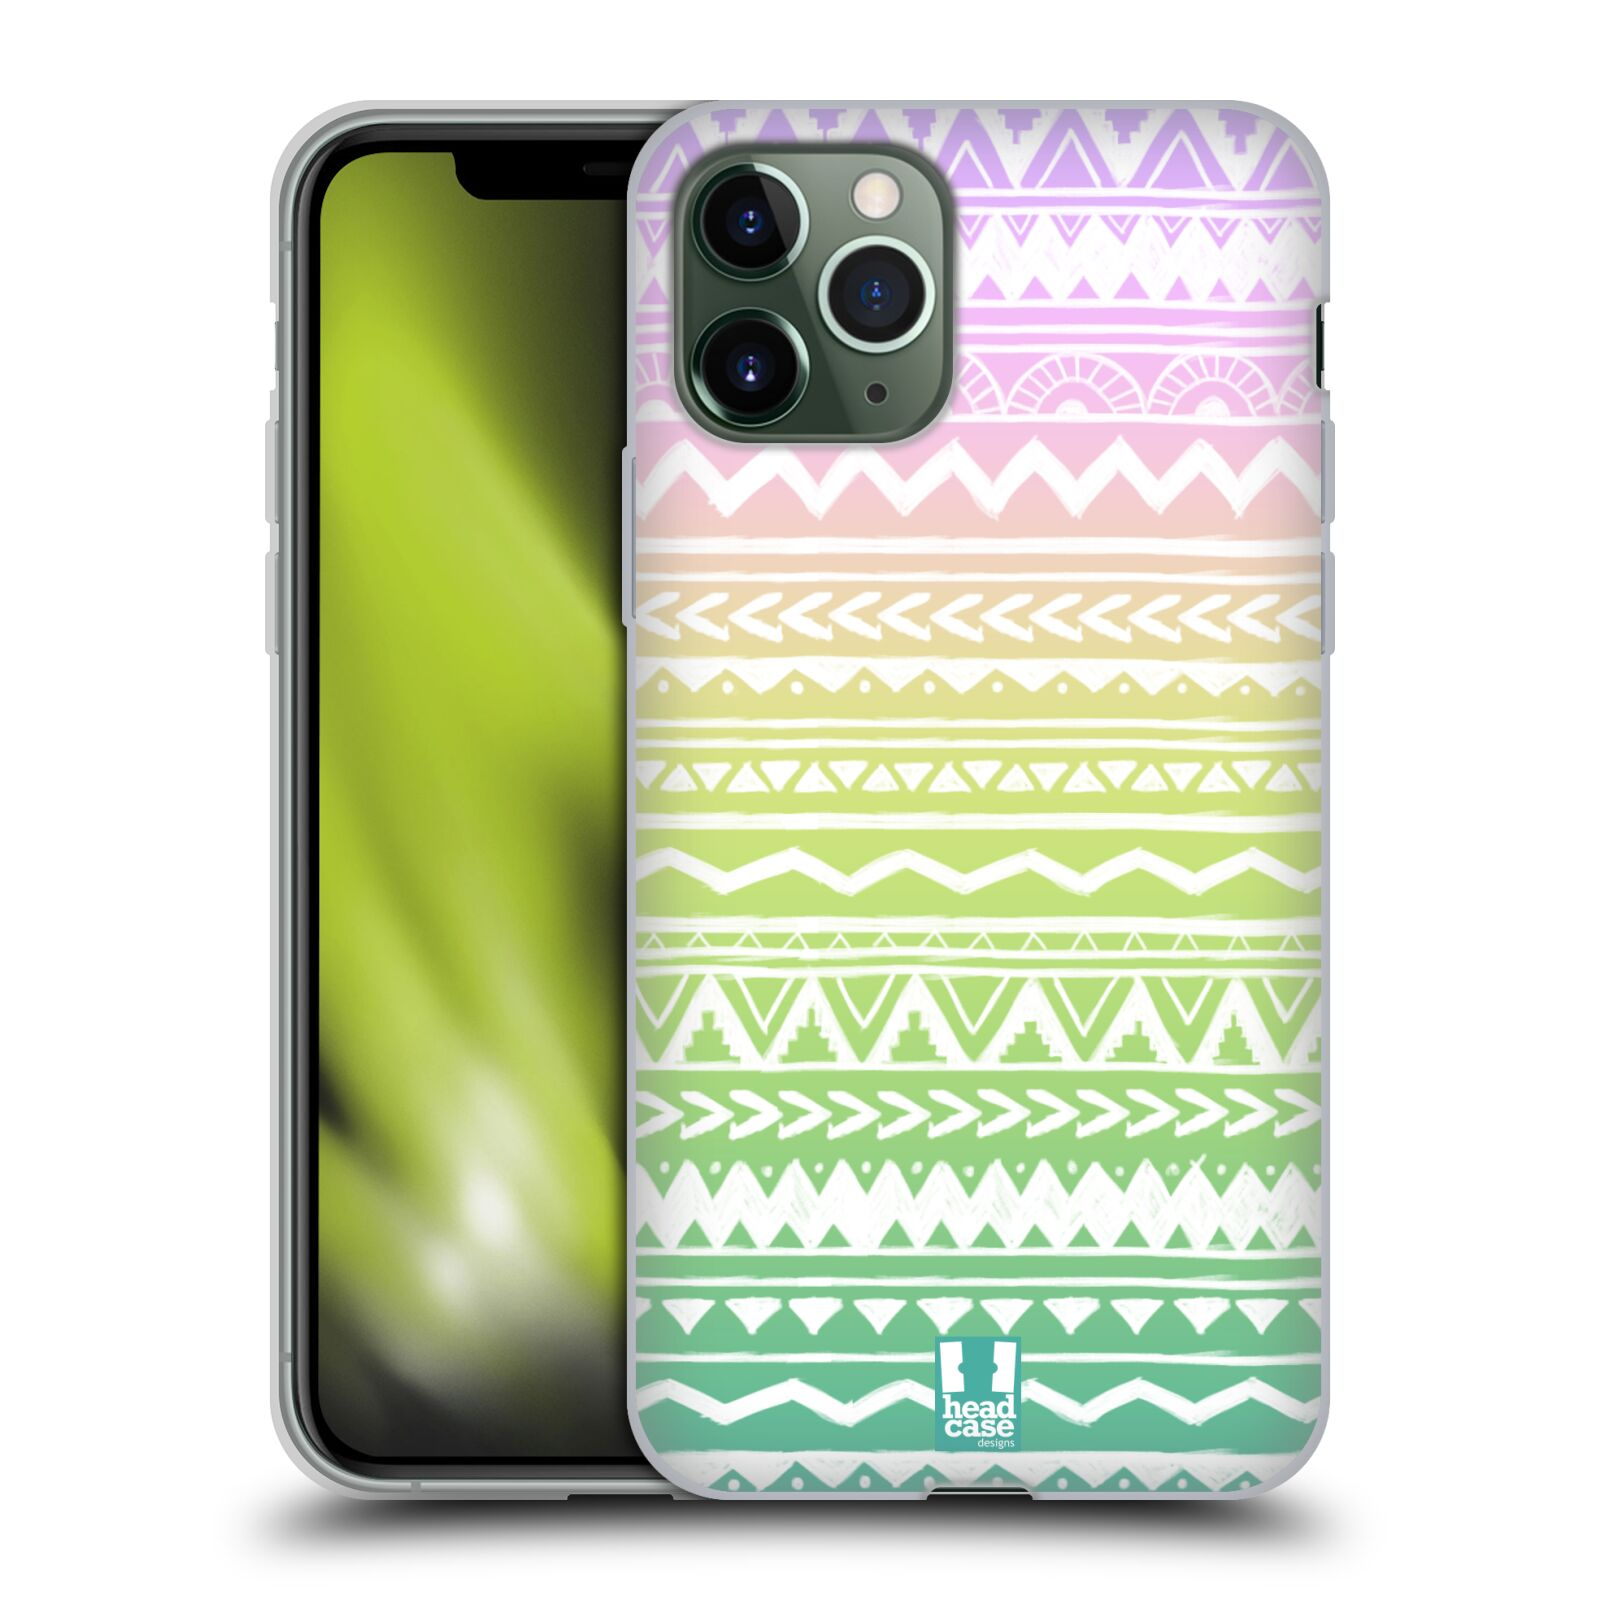 Silikonové pouzdro na mobil Apple iPhone 11 Pro - Head Case - MIX AZTEC DRAWN